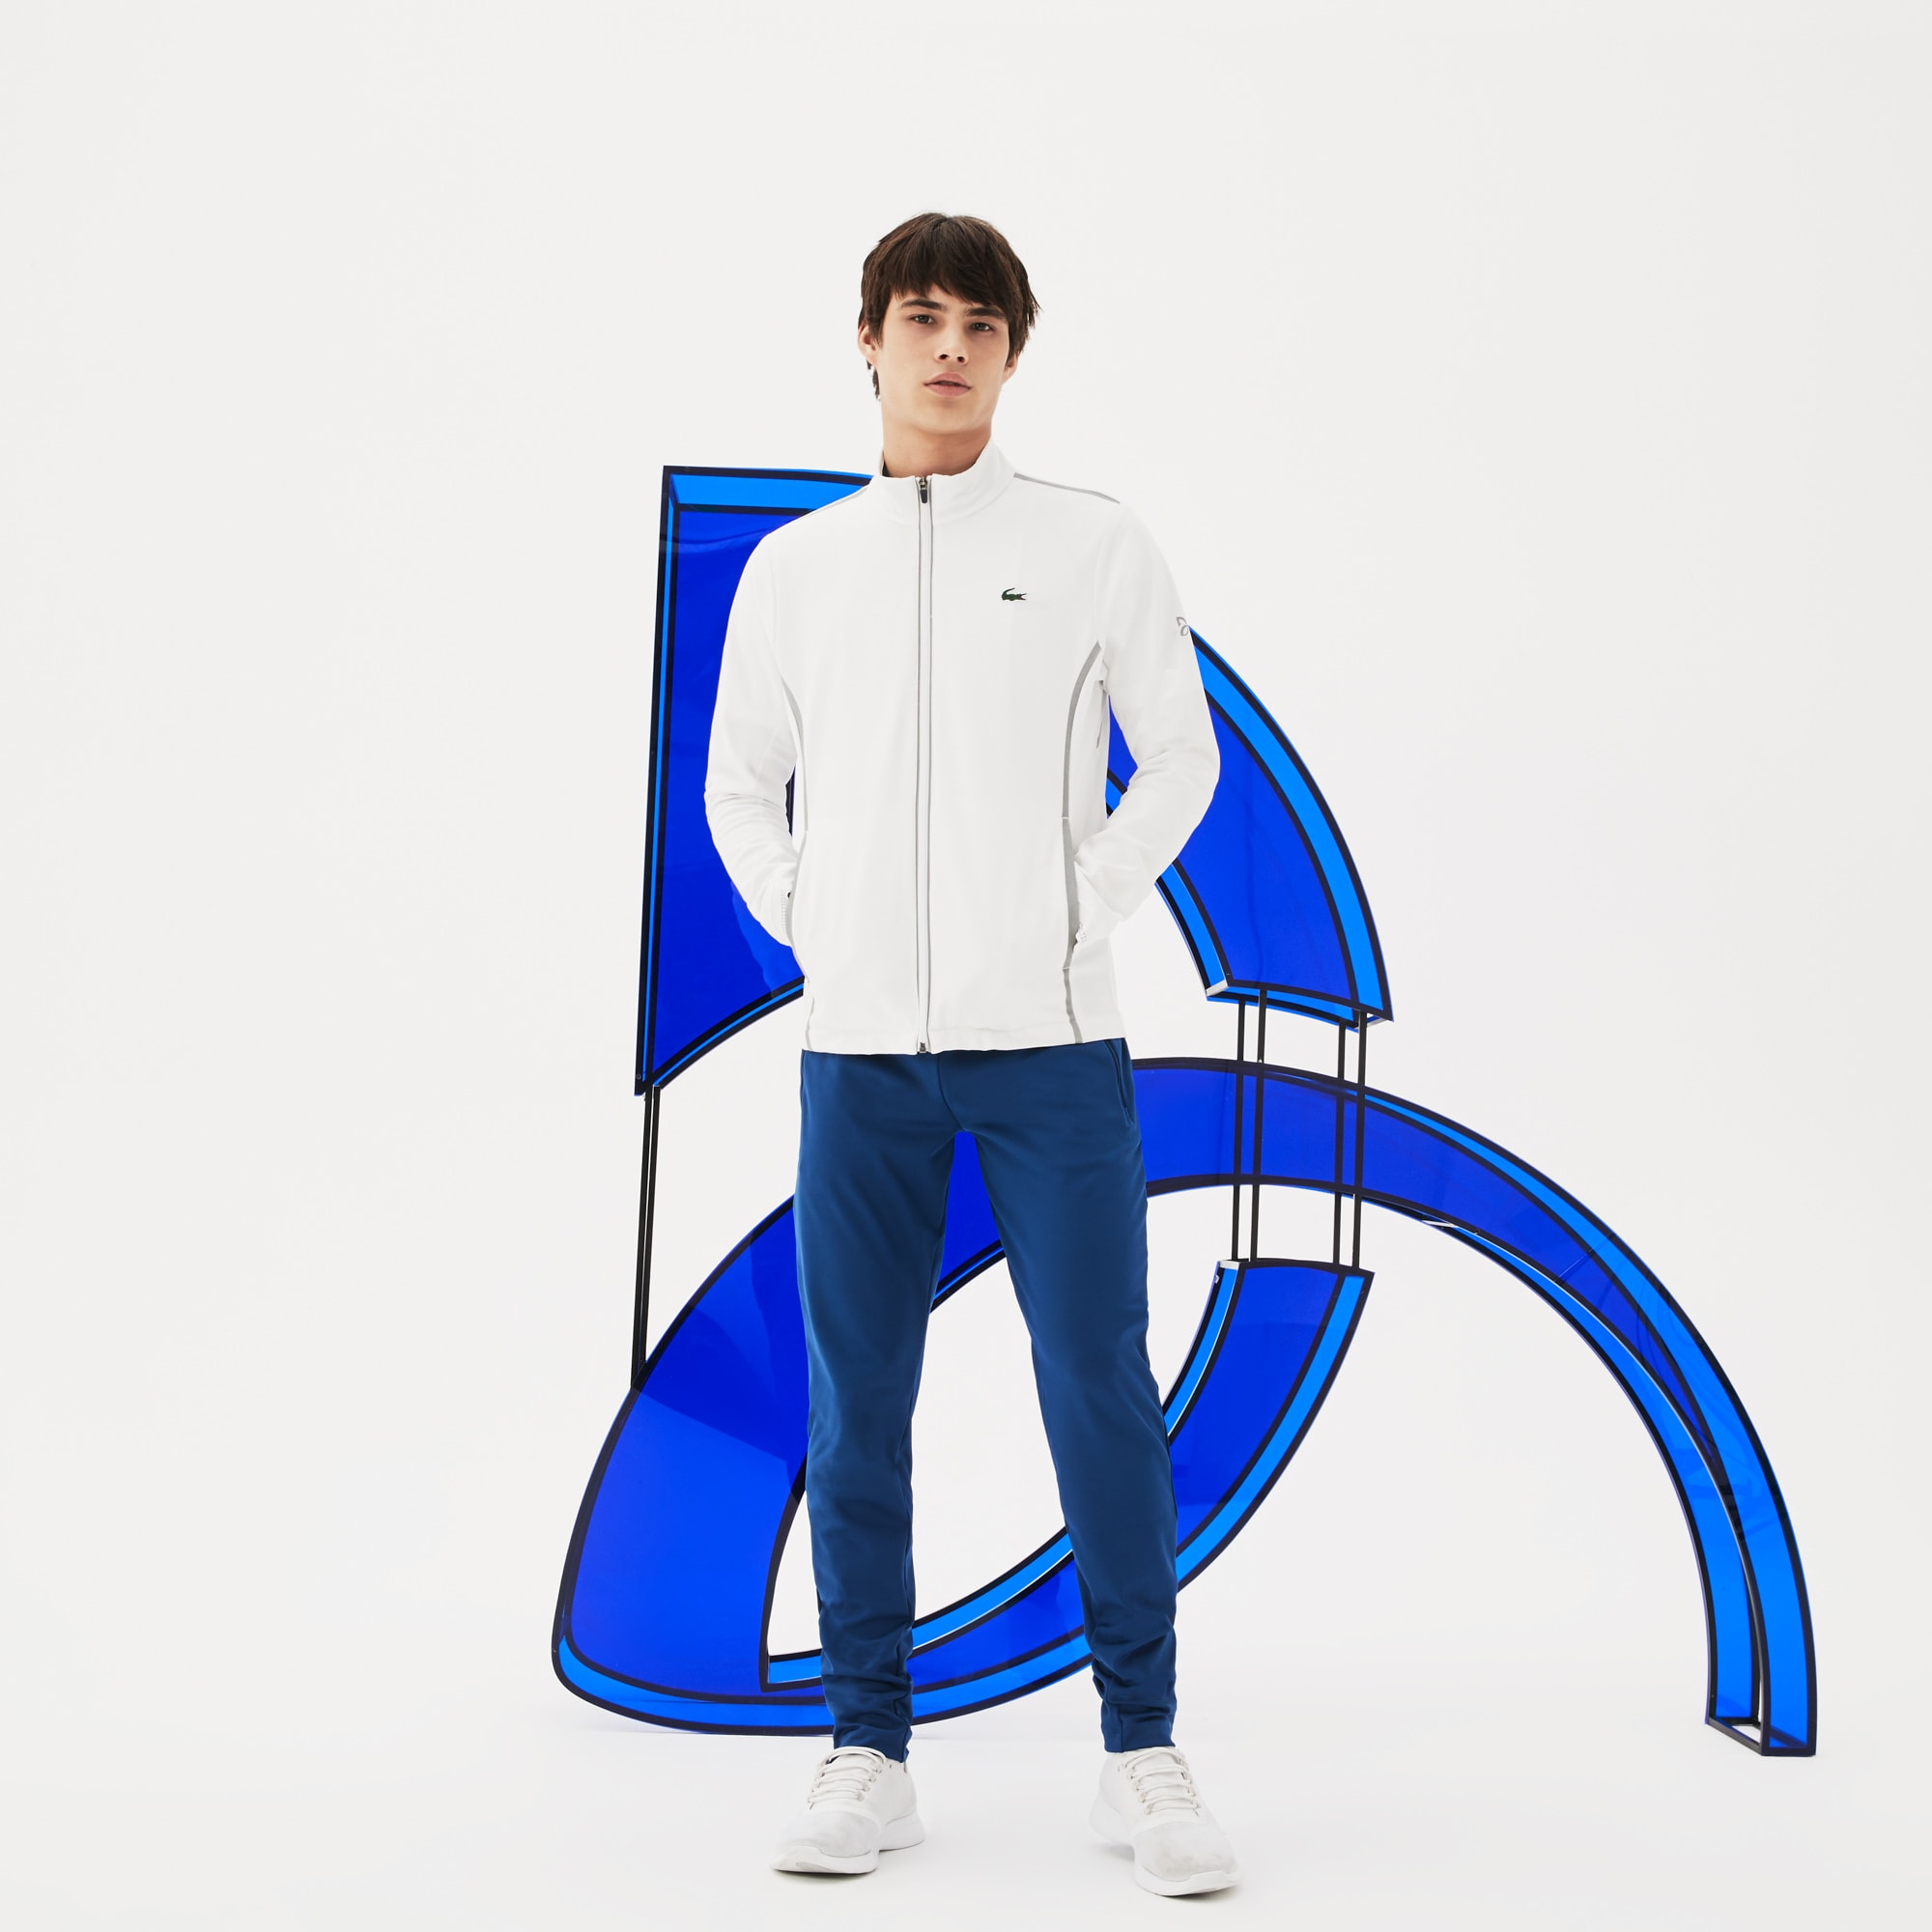 Men's Lacoste SPORT NOVAK DJOKOVIC SUPPORT WITH STYLE COLLECTION Technical Midlayer Zip Sweatshirt